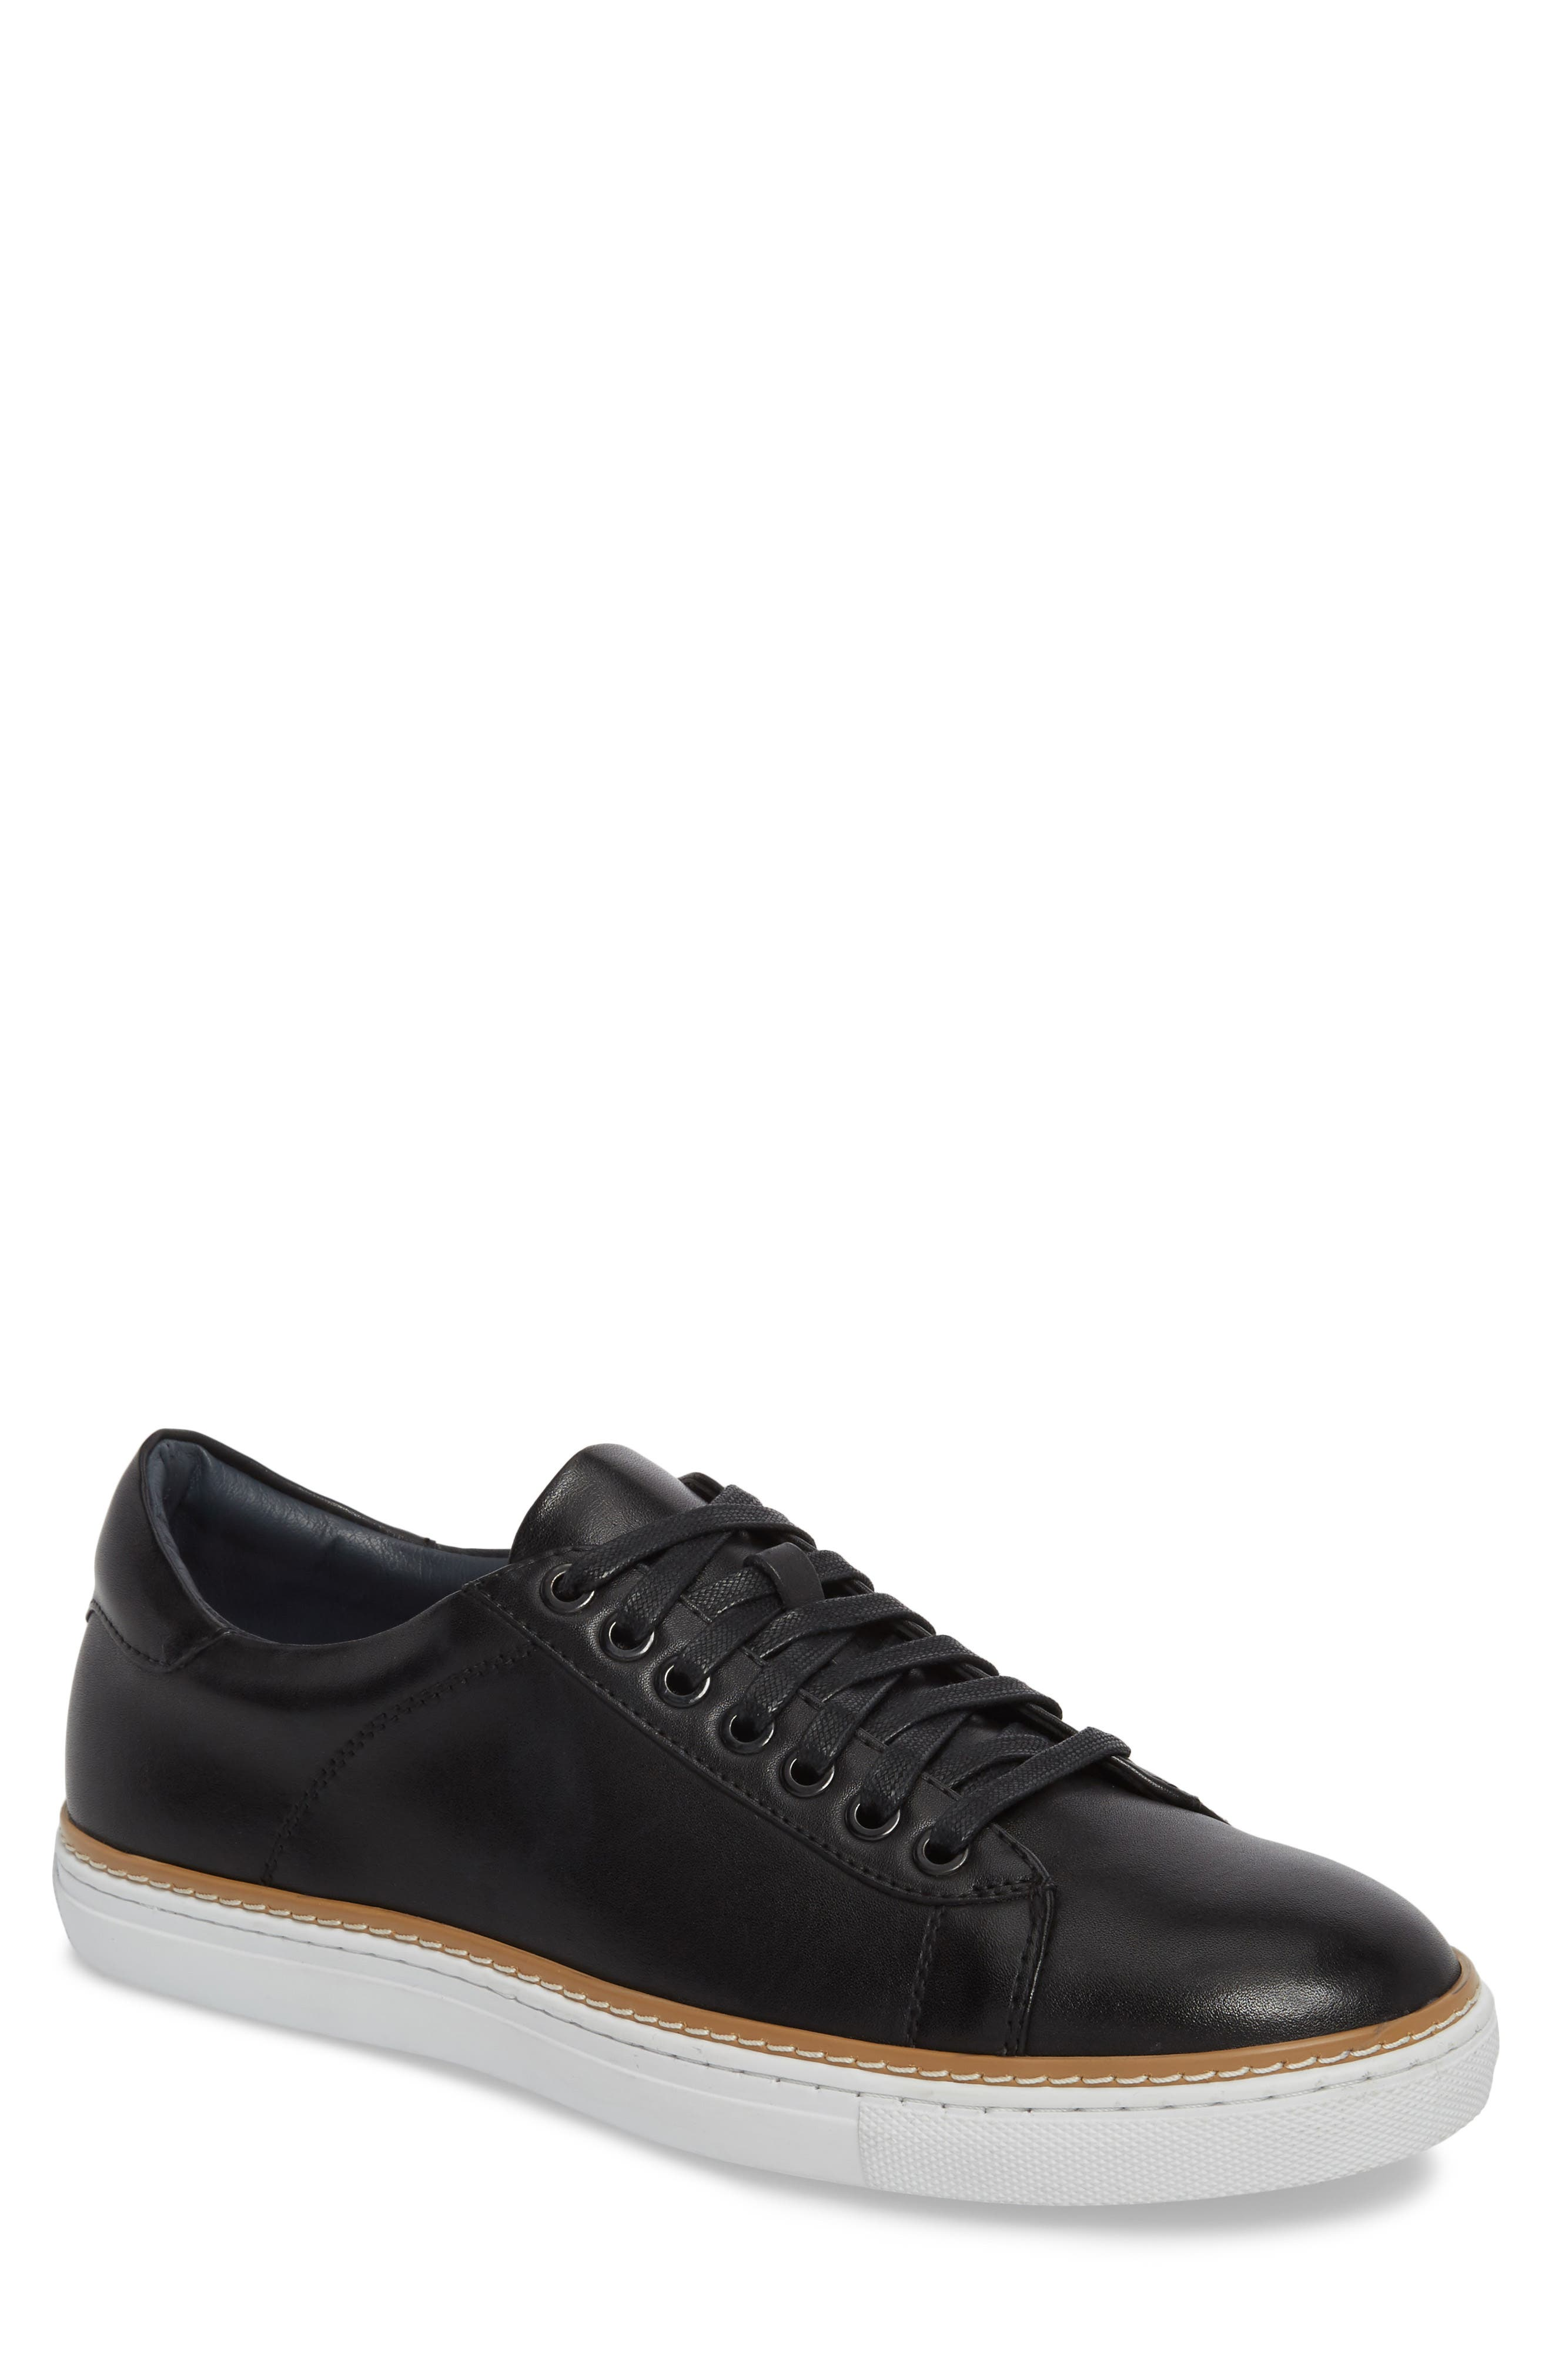 Main Image - English Laundry Juniper Low Top Sneaker (Men)